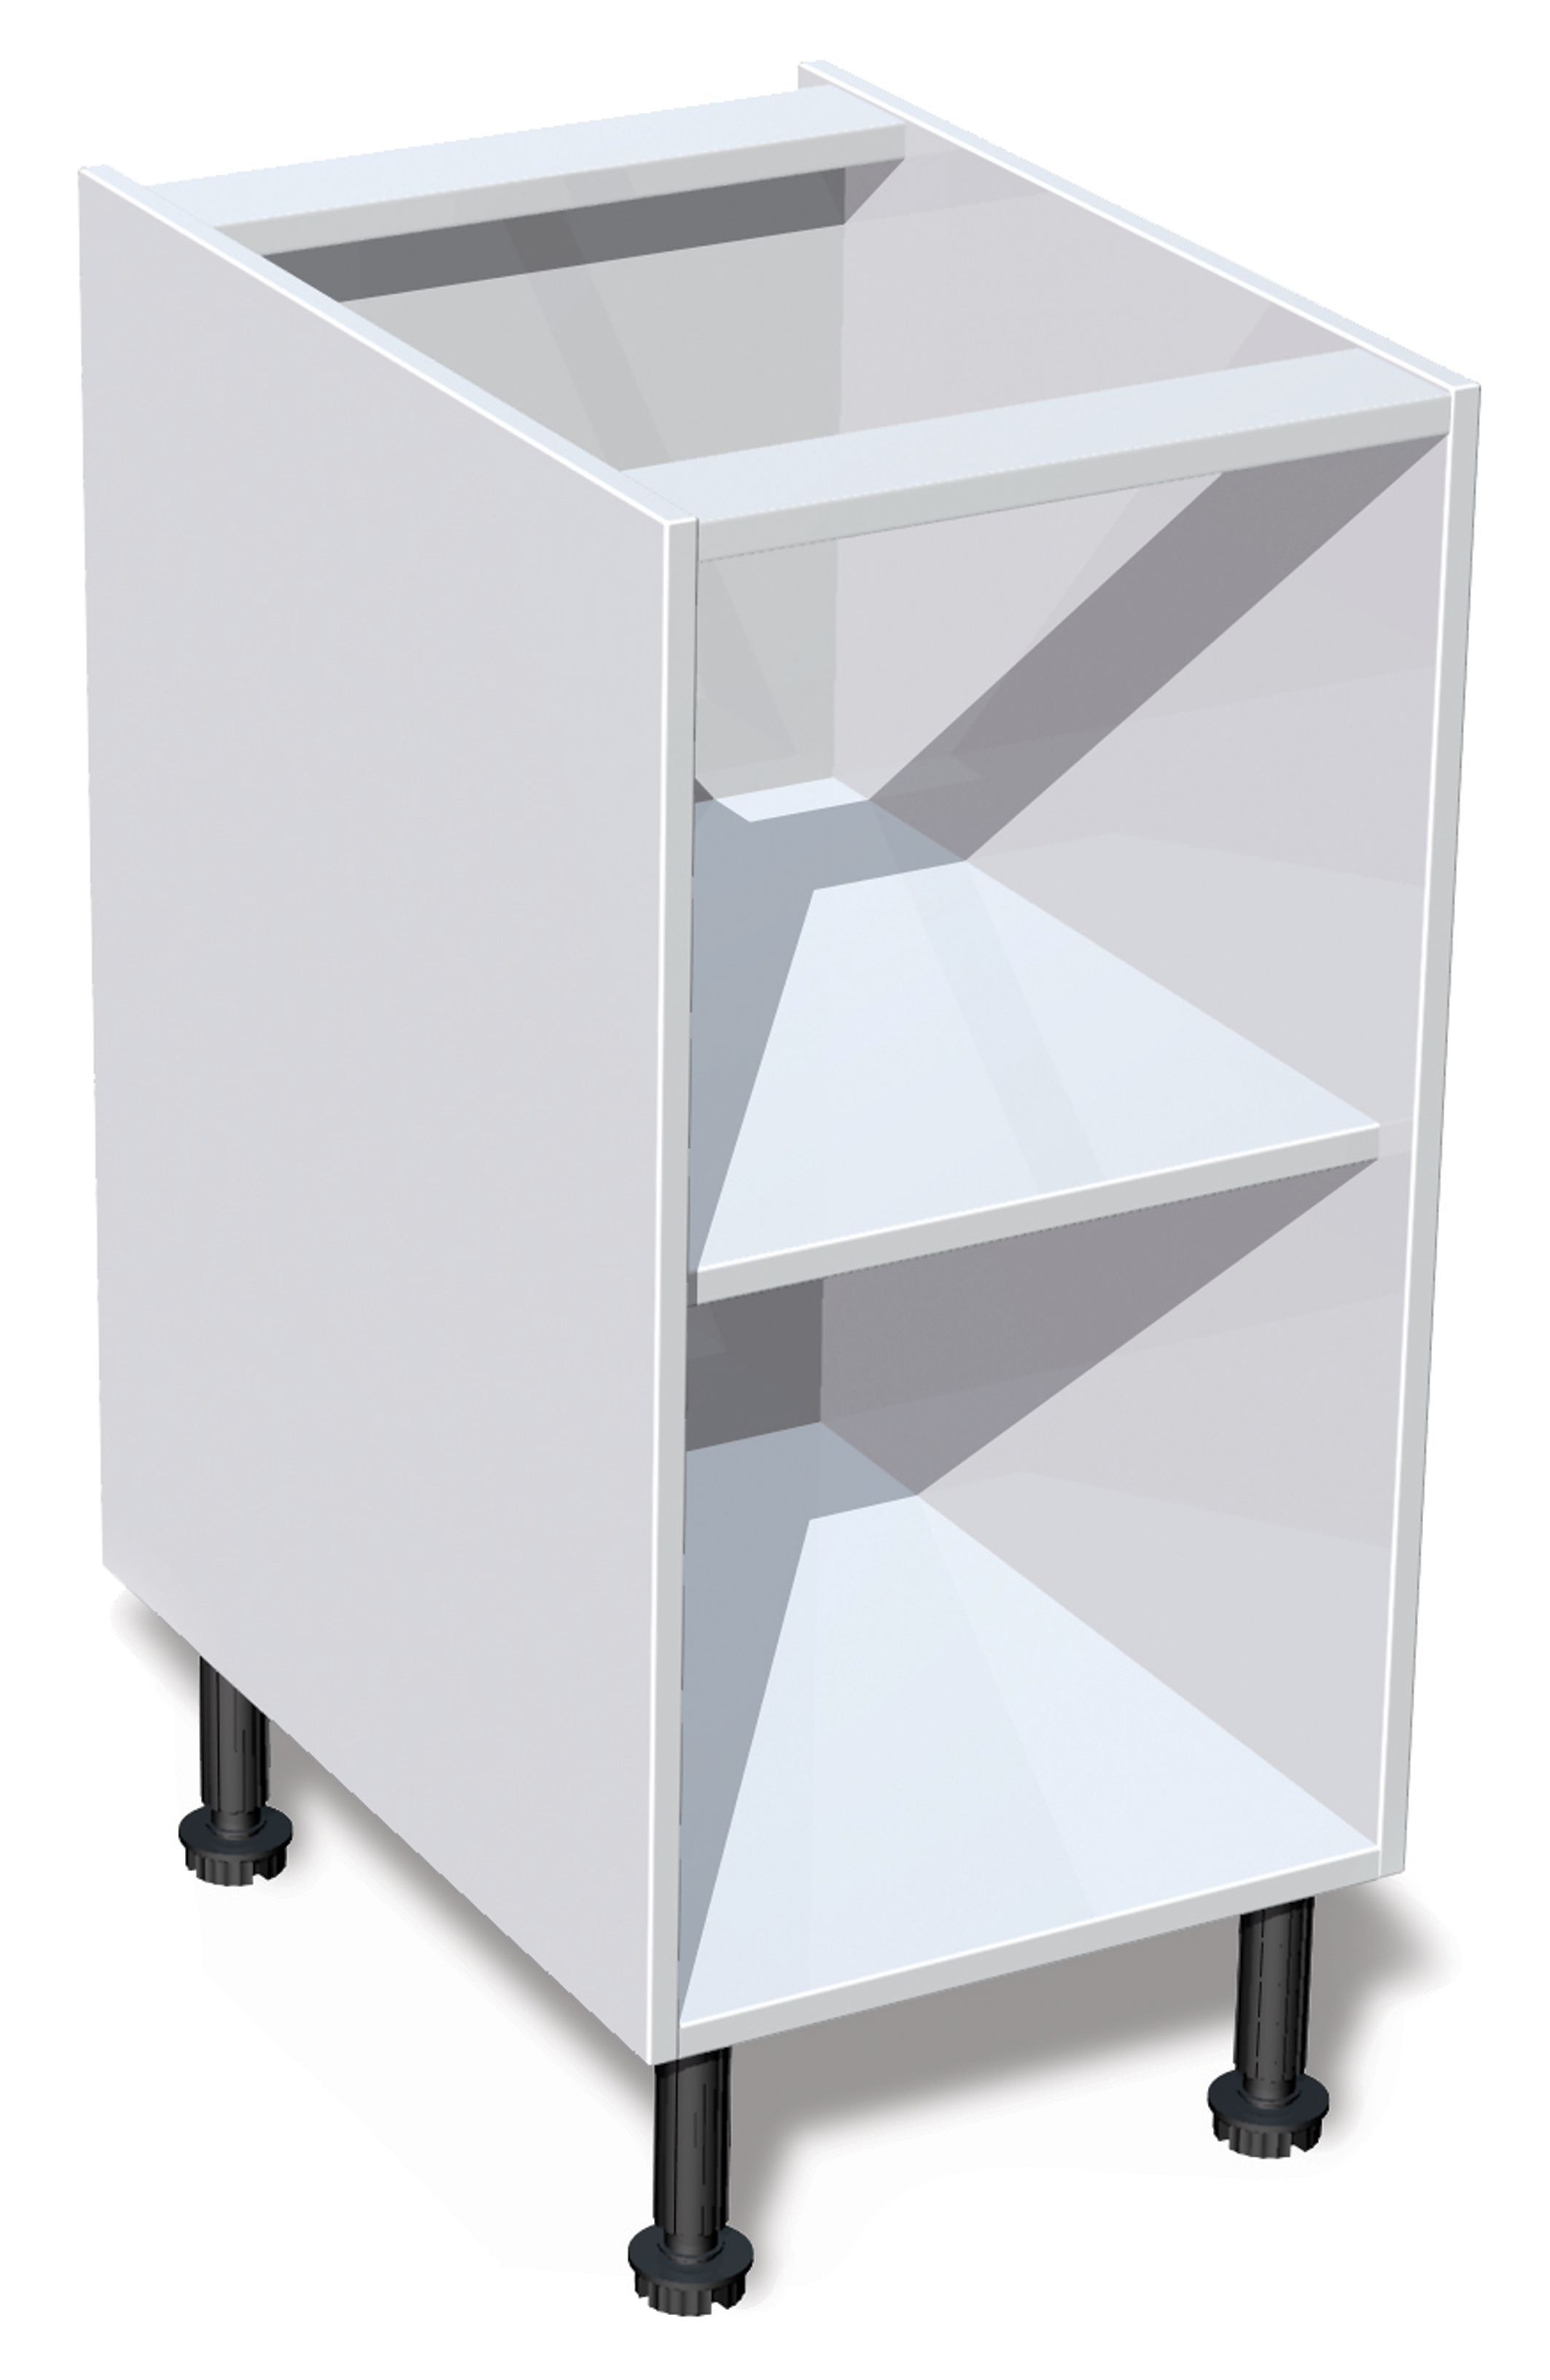 b q kitchen base cabinets it kitchens white standard base cabinet w 400mm 10857